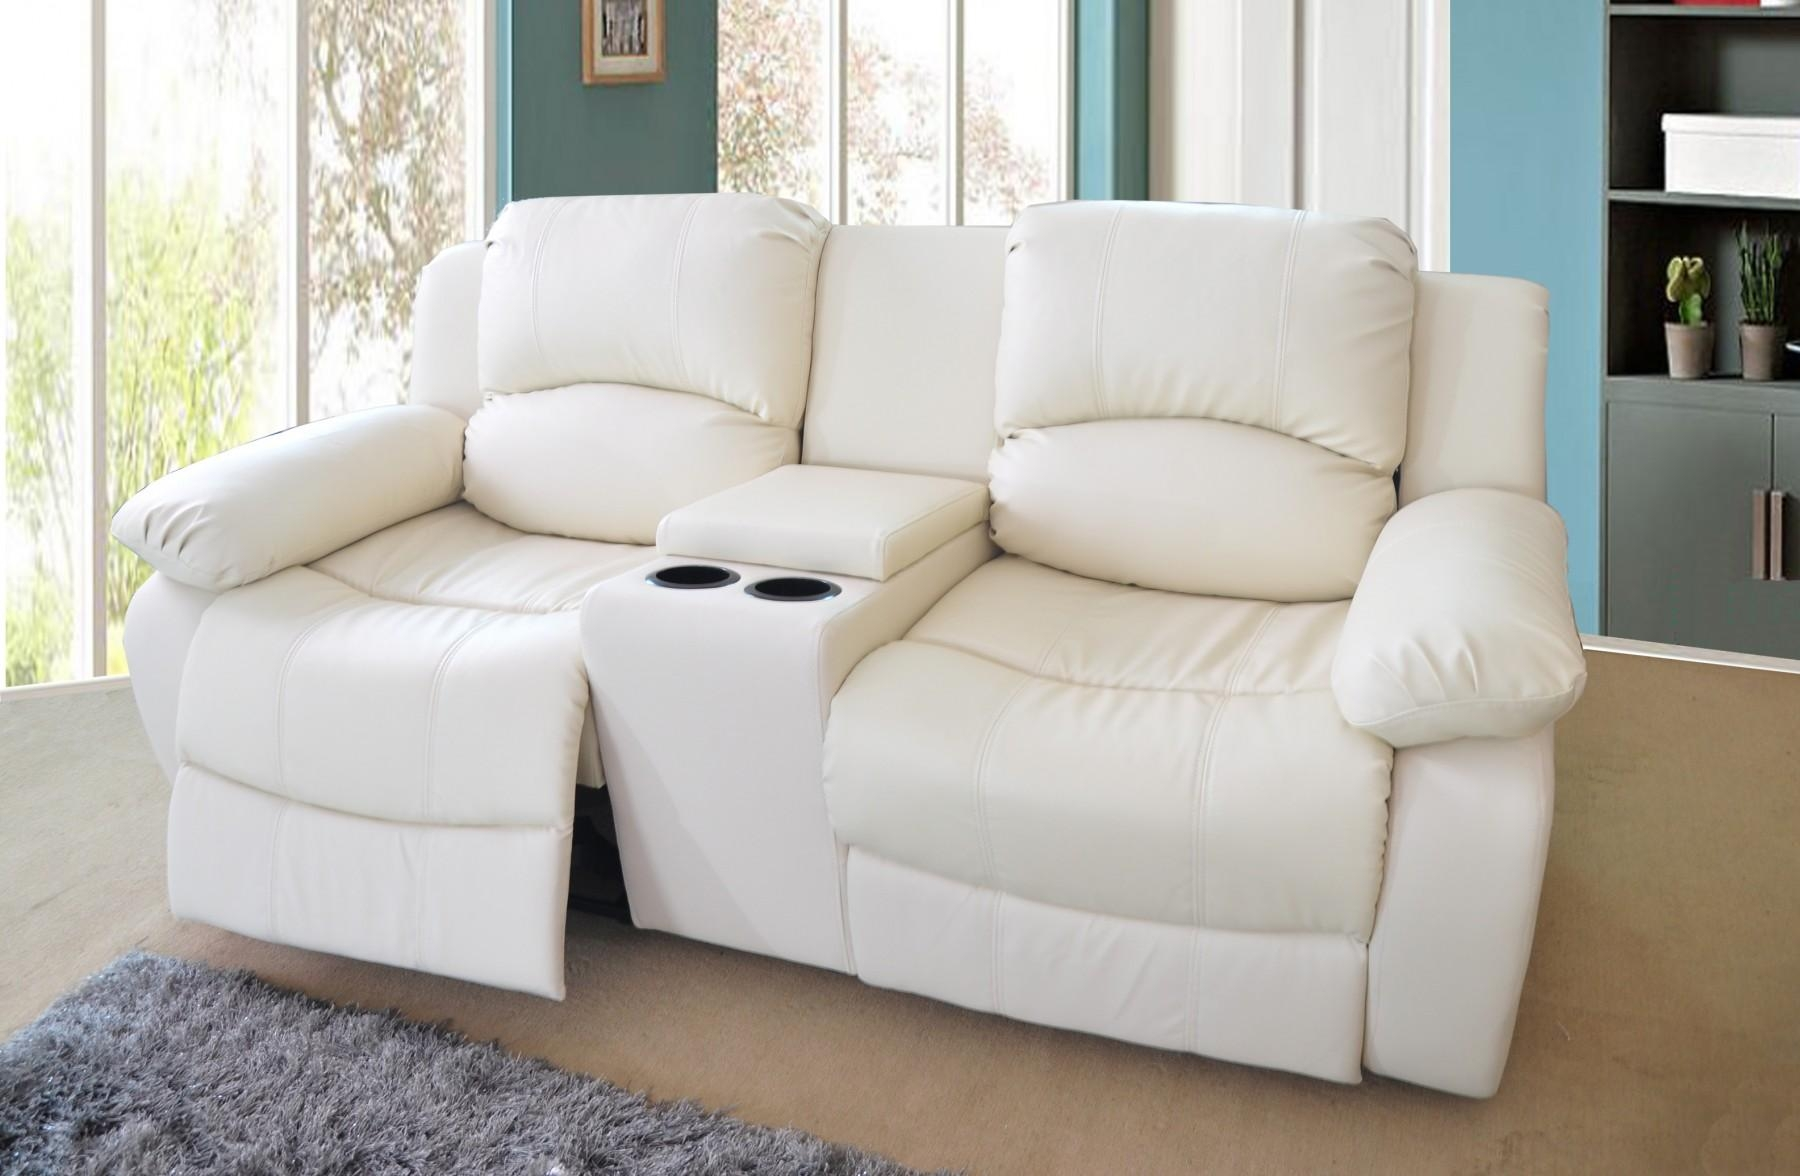 2 Seater Bonded Leather Recliner Sofa With Drinks Console - Cream regarding 2 Seat Recliner Sofas